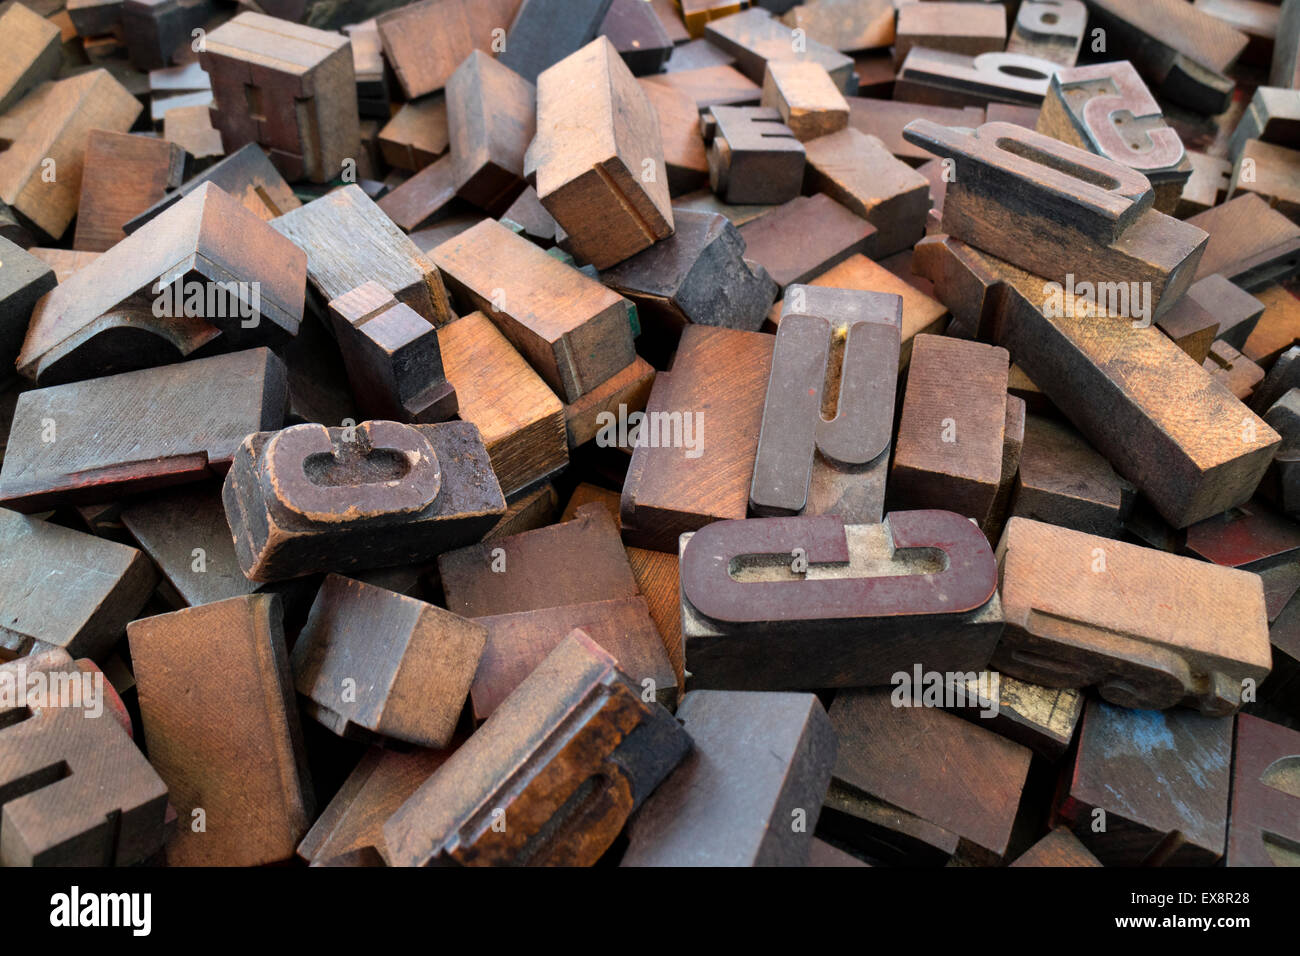 Heap of old carved wooden letters - Stock Image